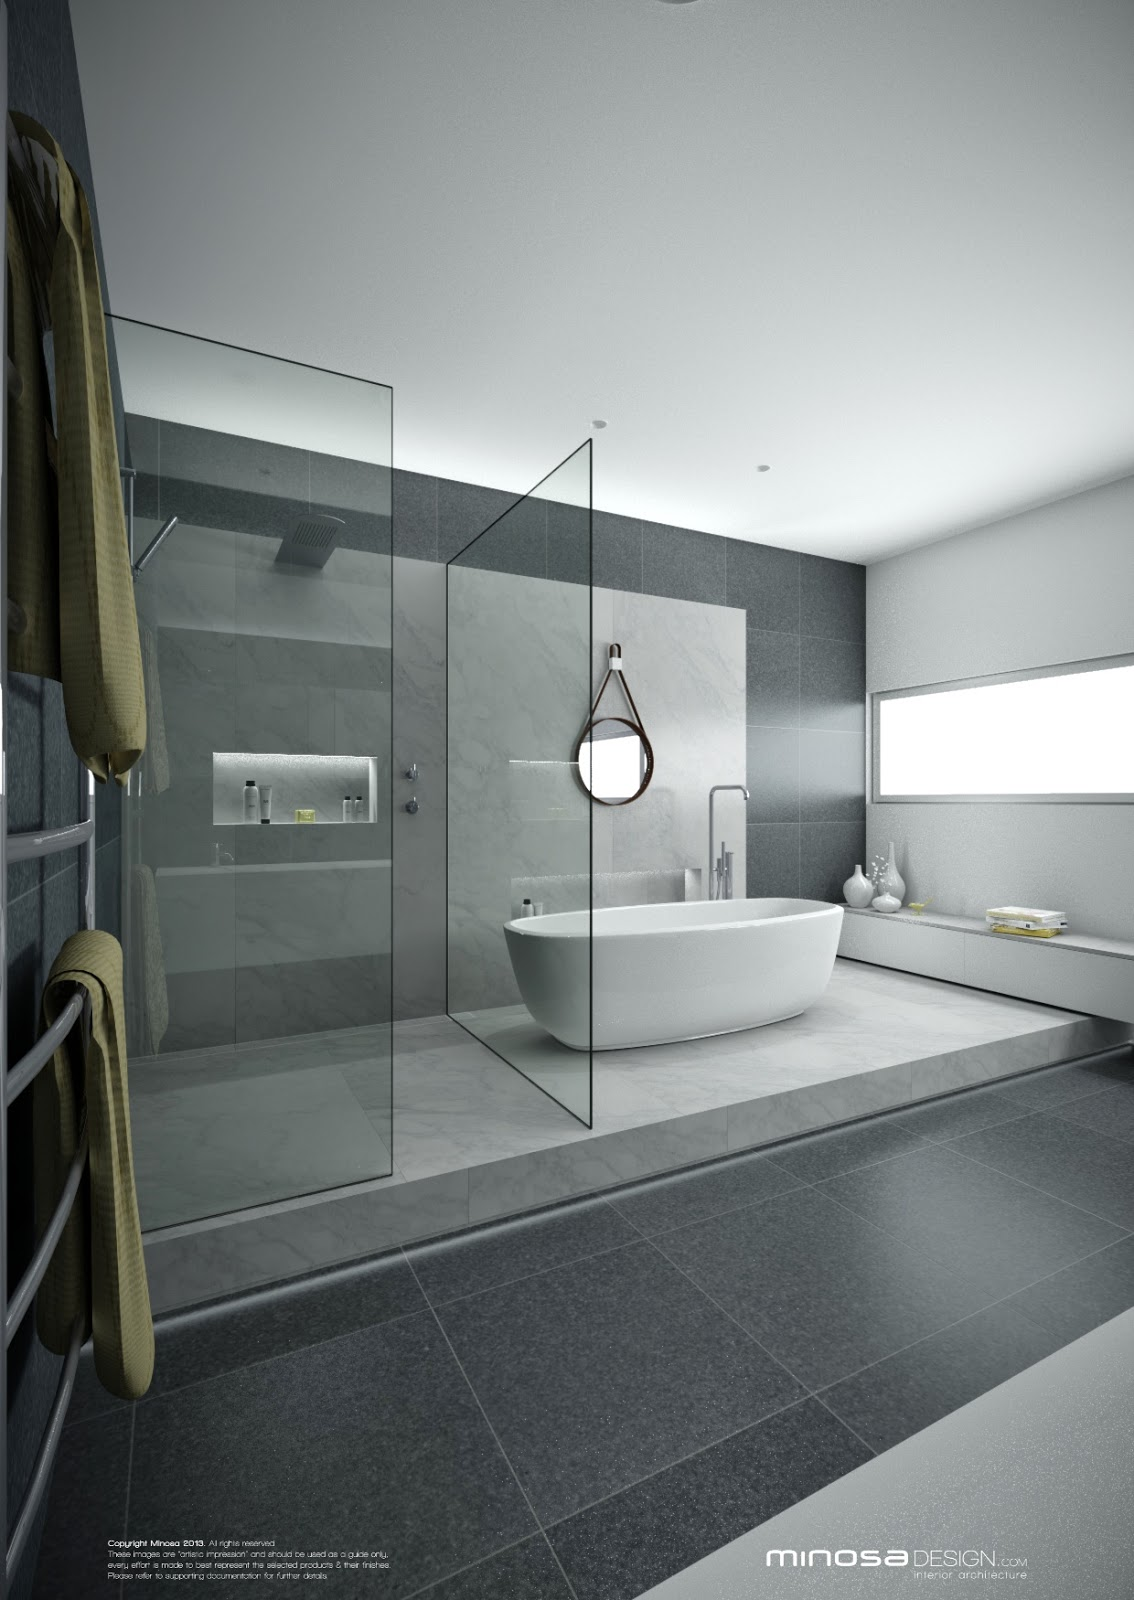 Architecture Bathroom Design Minosa A Real Showstopper Modern Bathroom